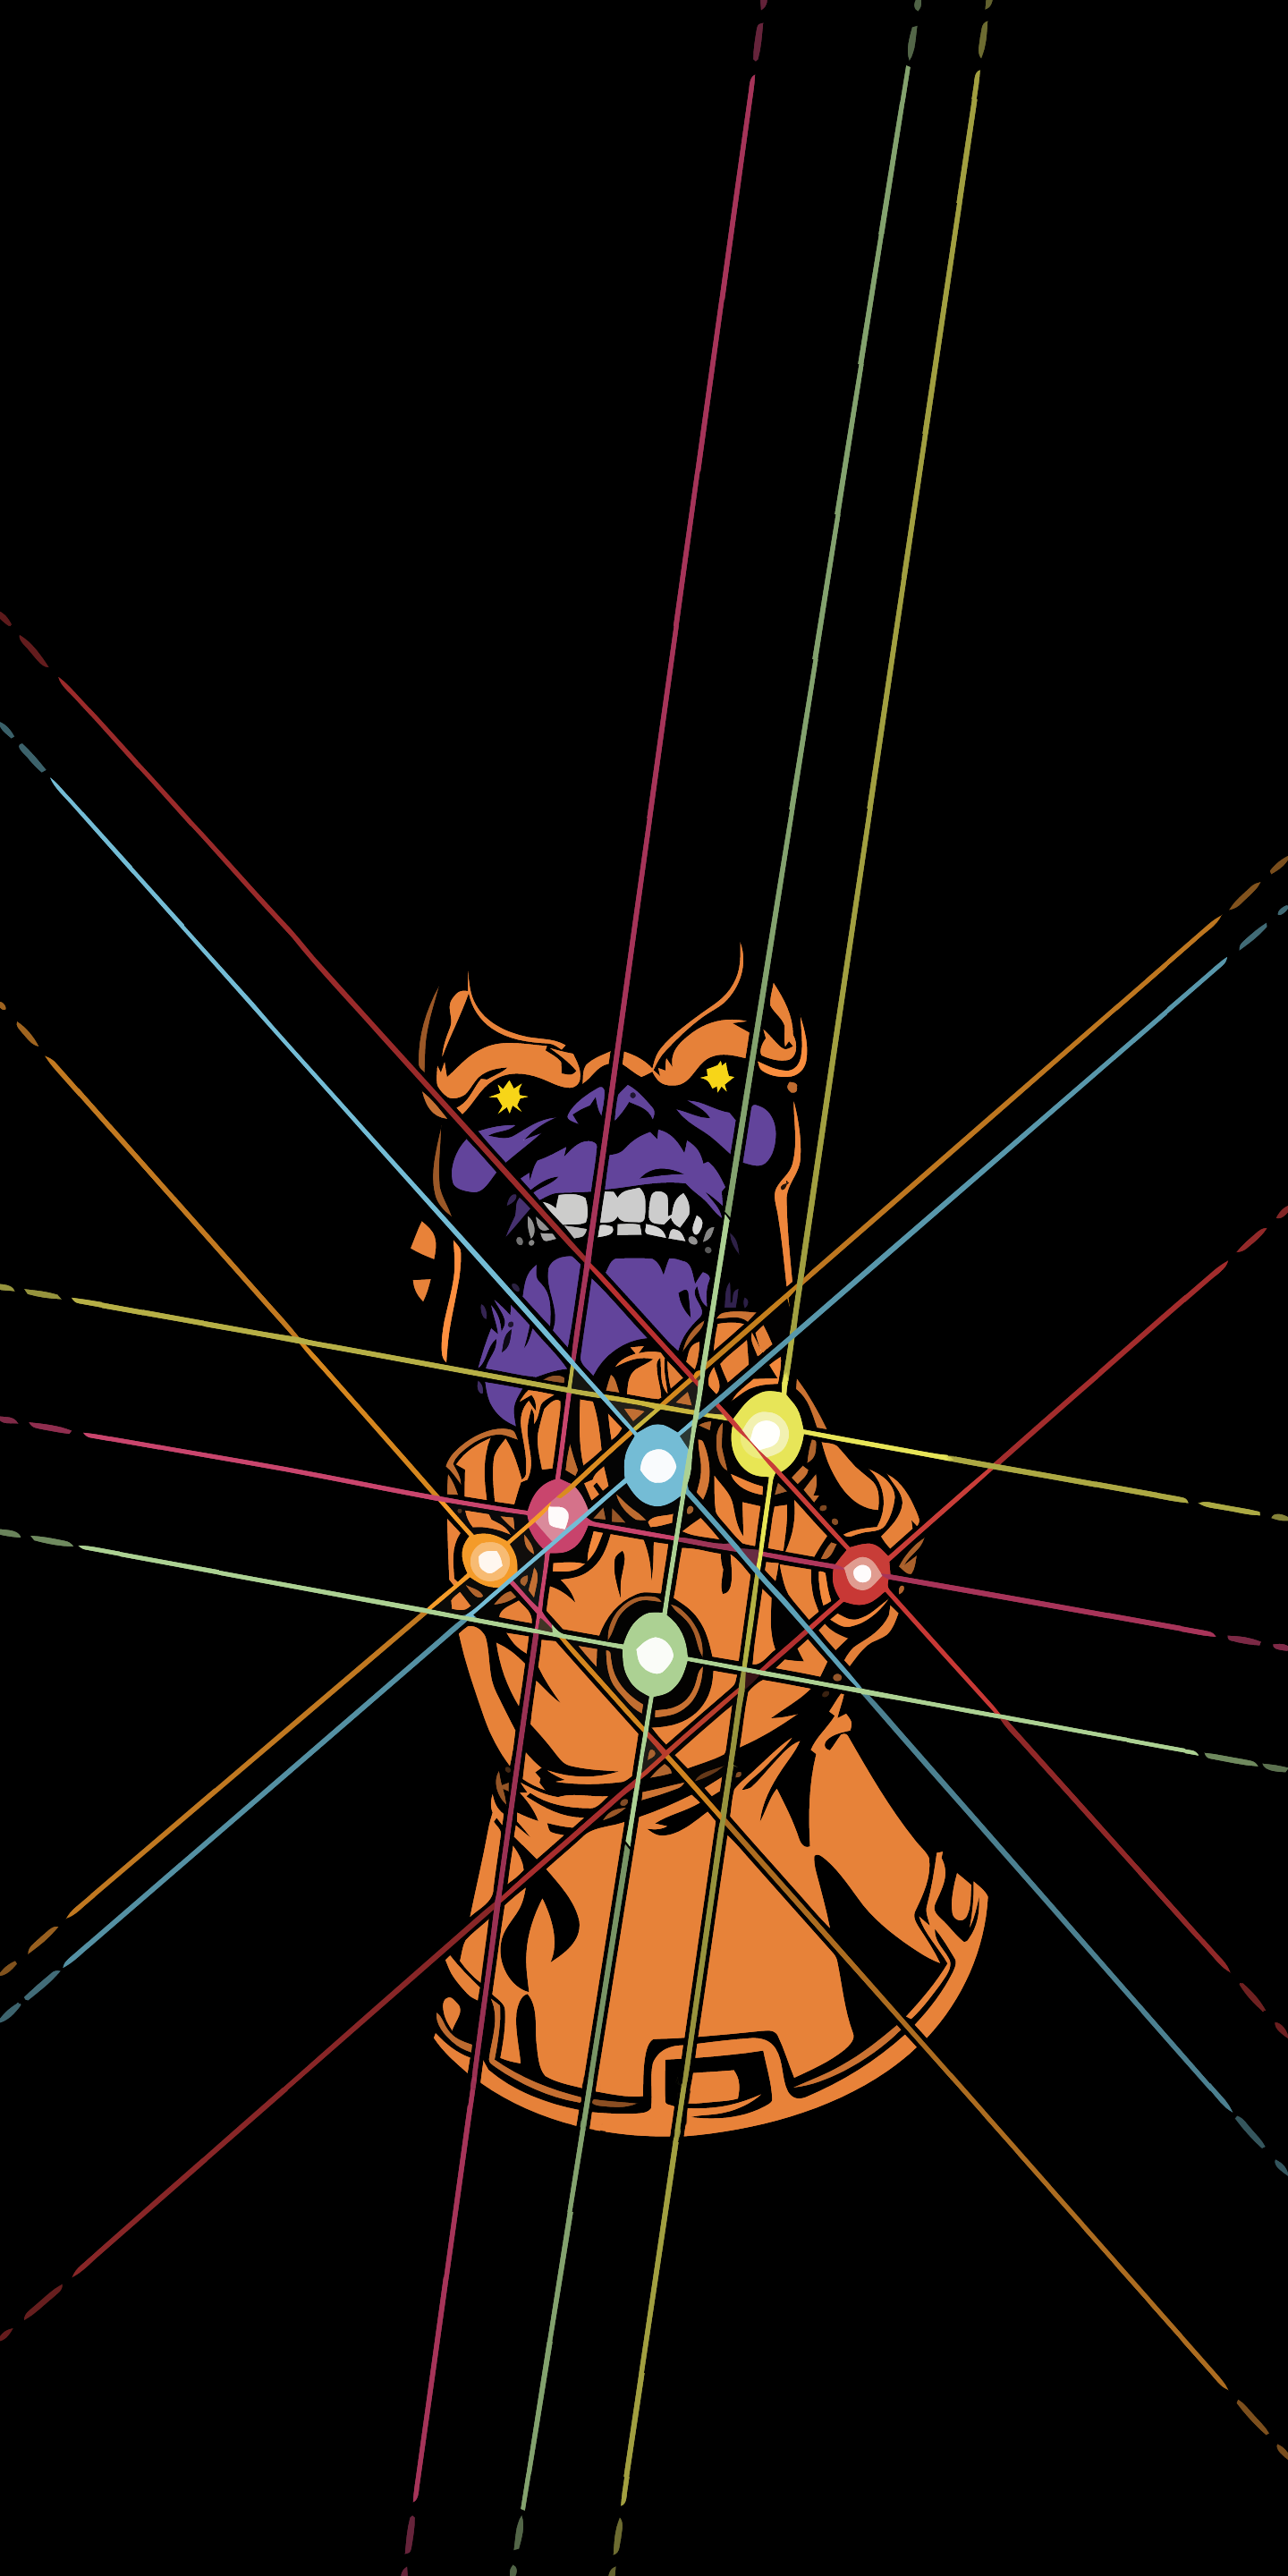 Infinity Gauntlet Thanos Amoled Wallpaper X